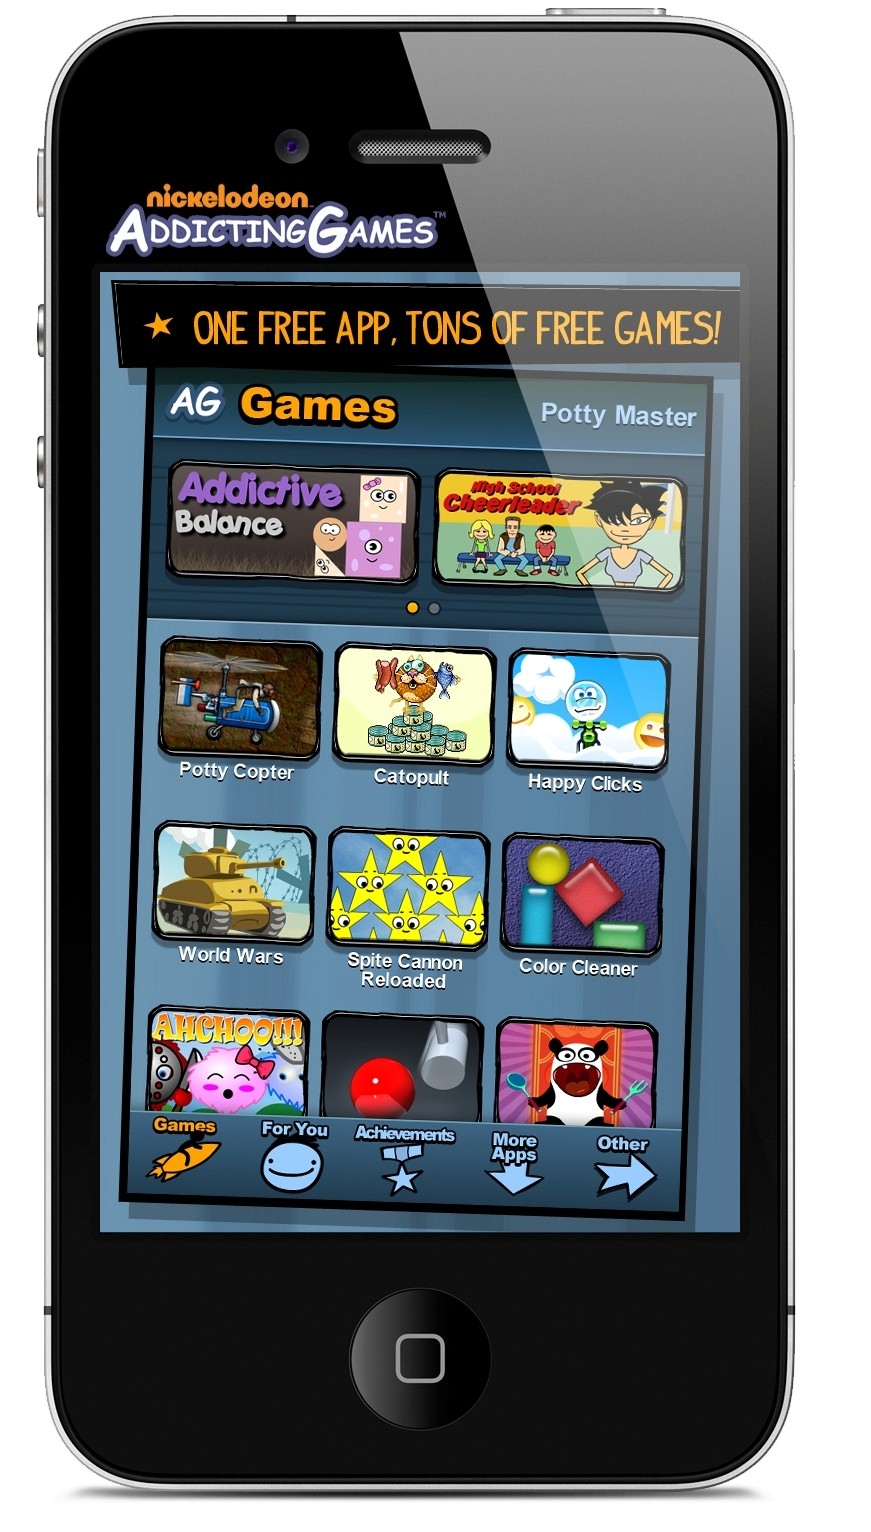 addicting games to download on iphone